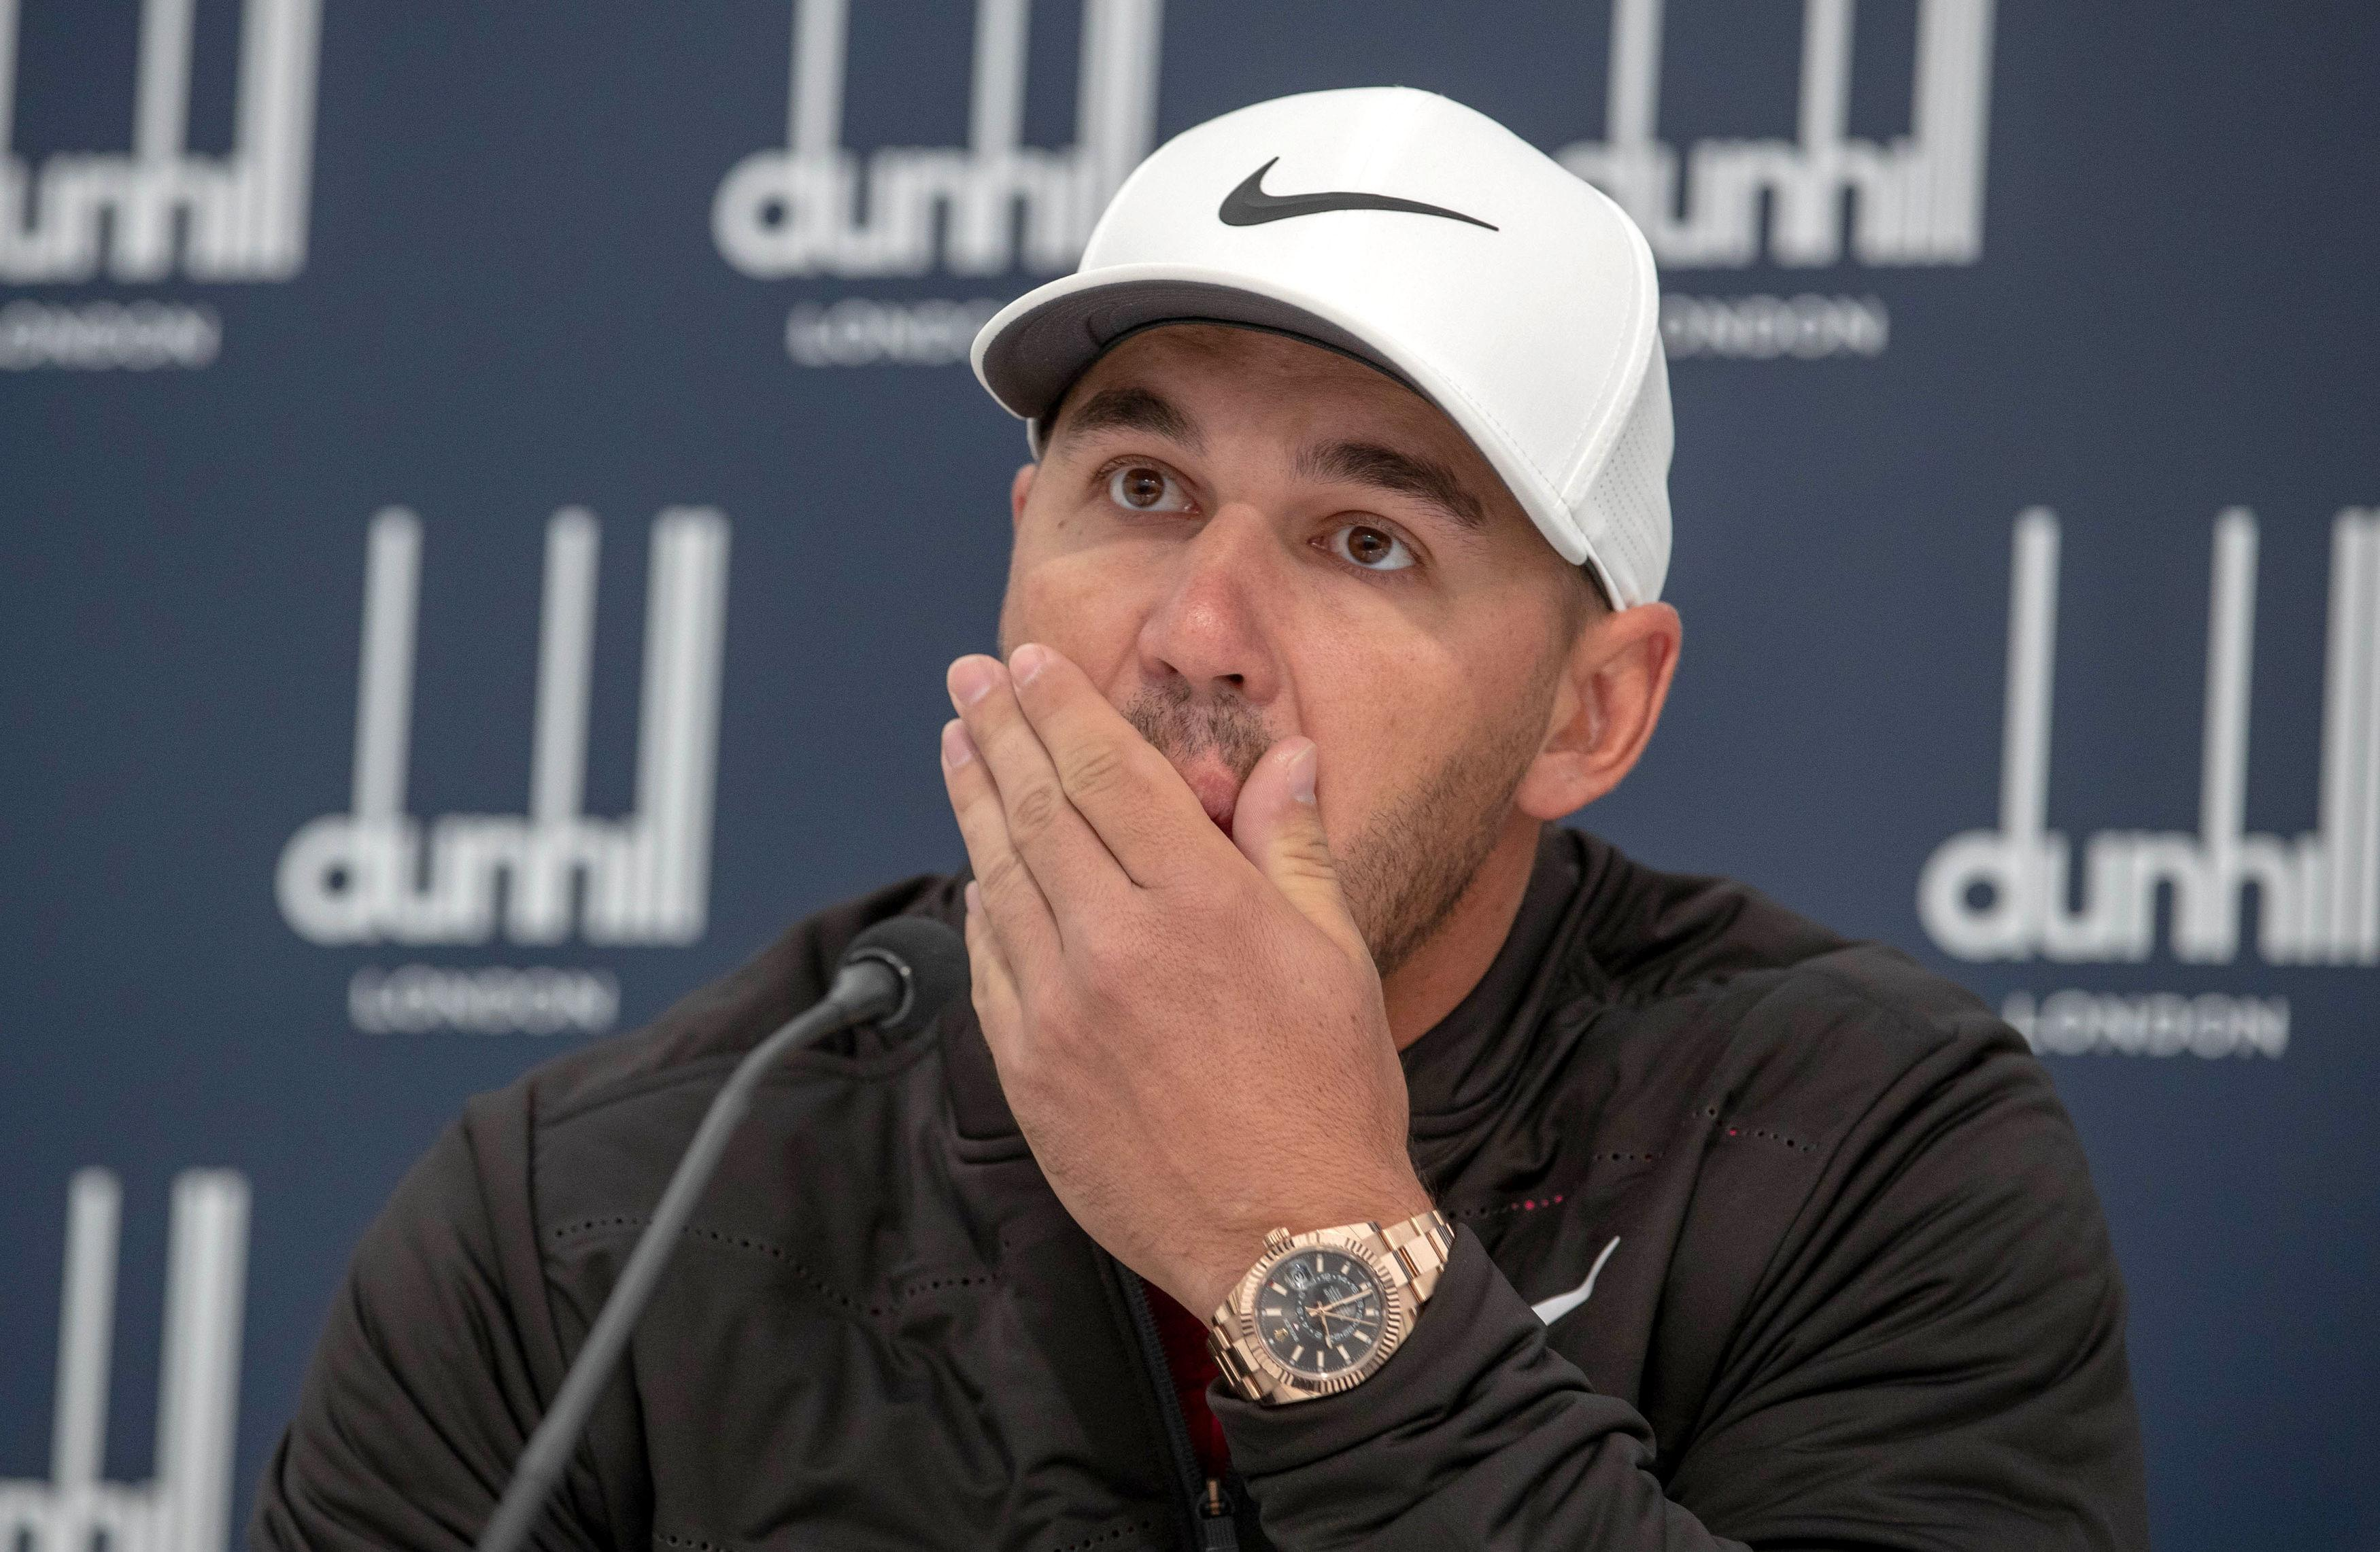 Koepka has revealed he has been left heartbroken after learning the news of Remande's injury